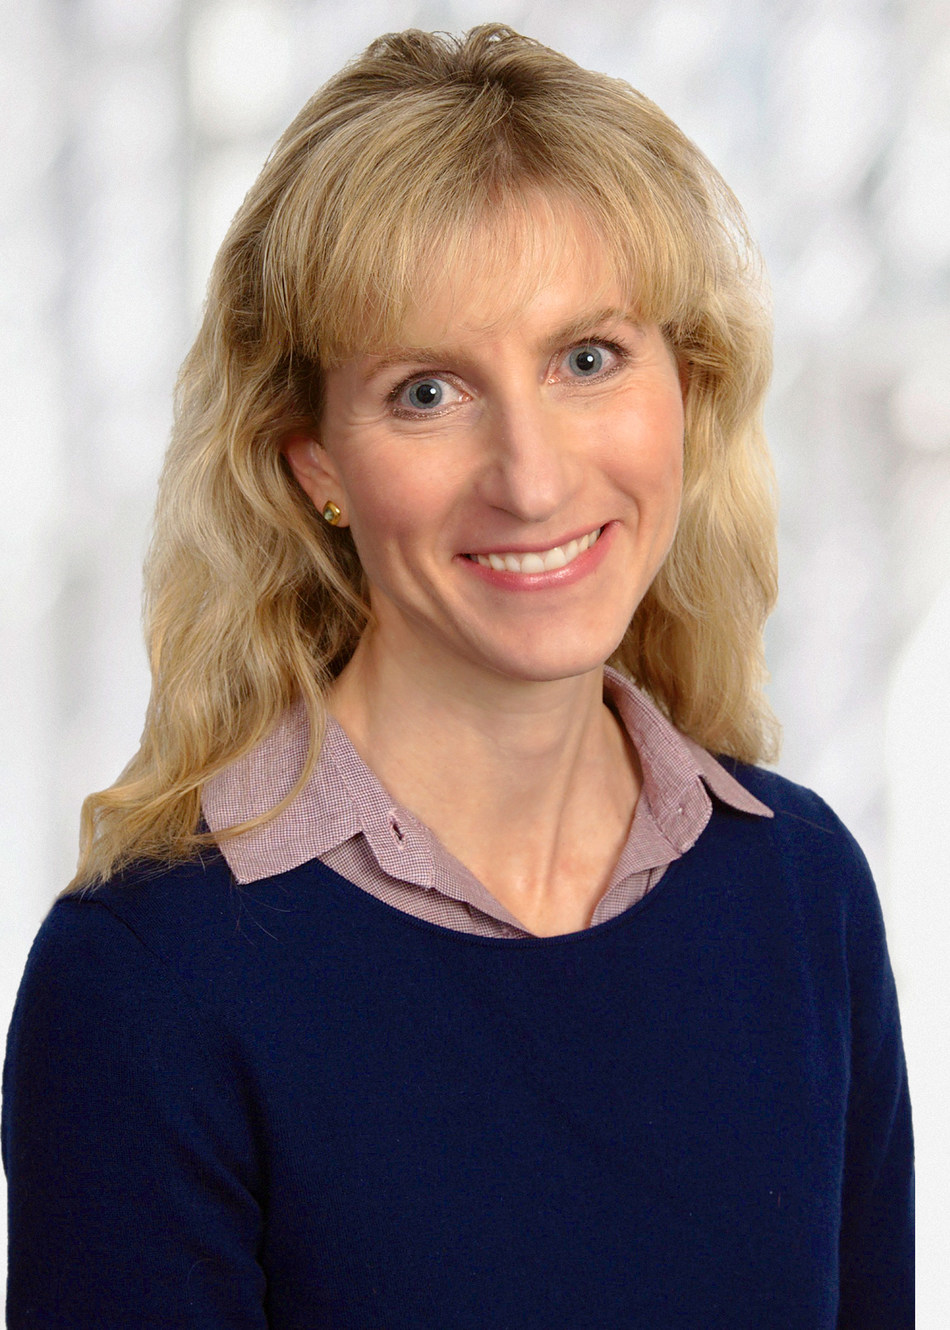 Edra Stern, M.D., an internist in Greenwich, Conn., joins the MDVIP network to deliver personalized primary care.